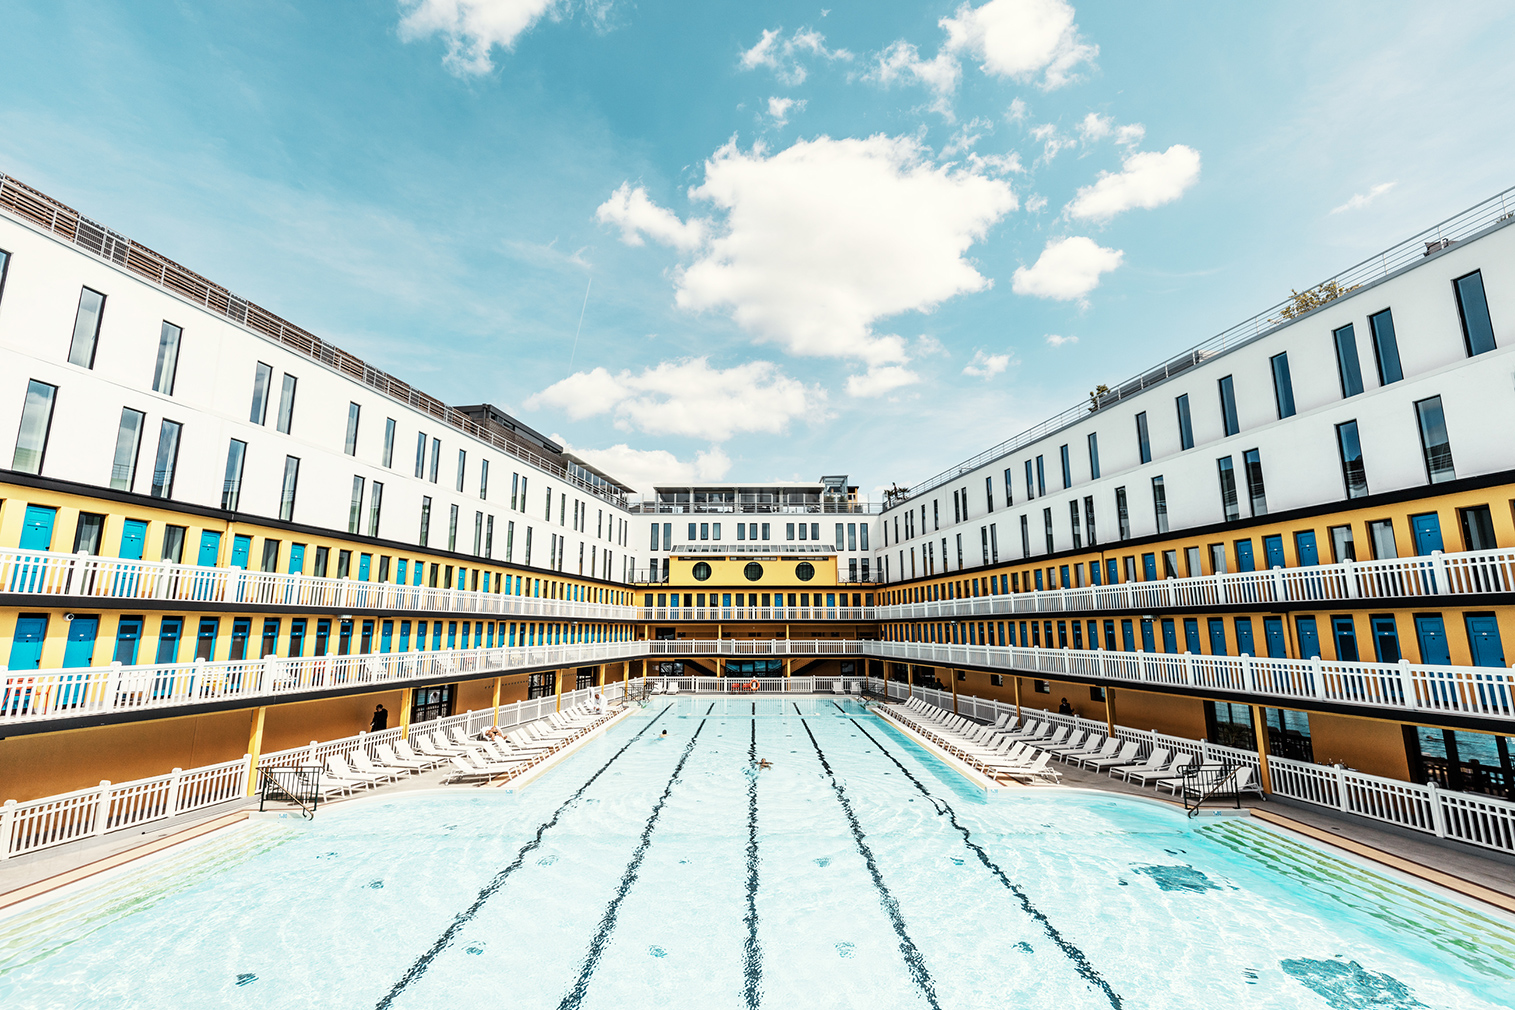 Paris incredible swimming pools photographed by ludwig favre for Piscine molitor